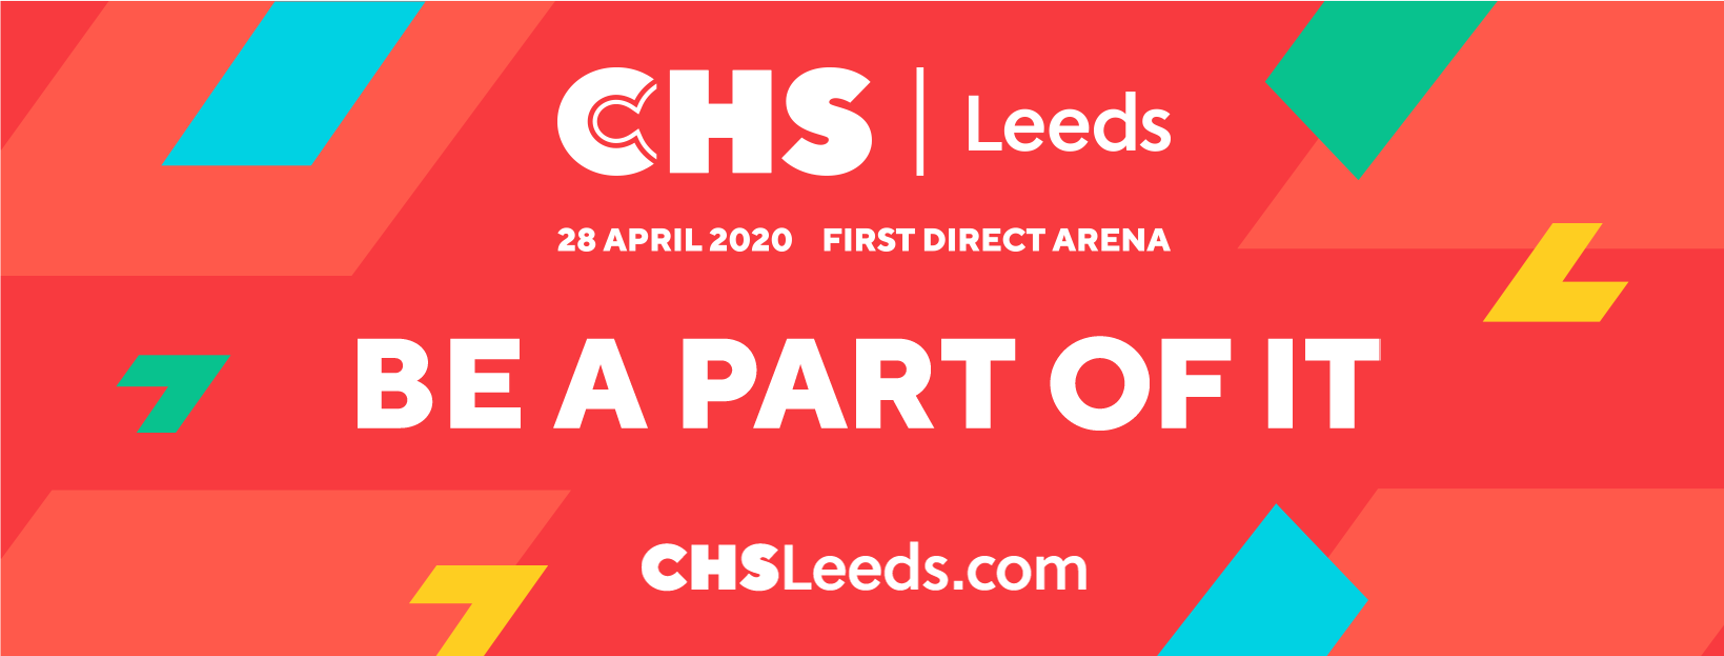 Click here to learn how to exhibit at CHS Leeds